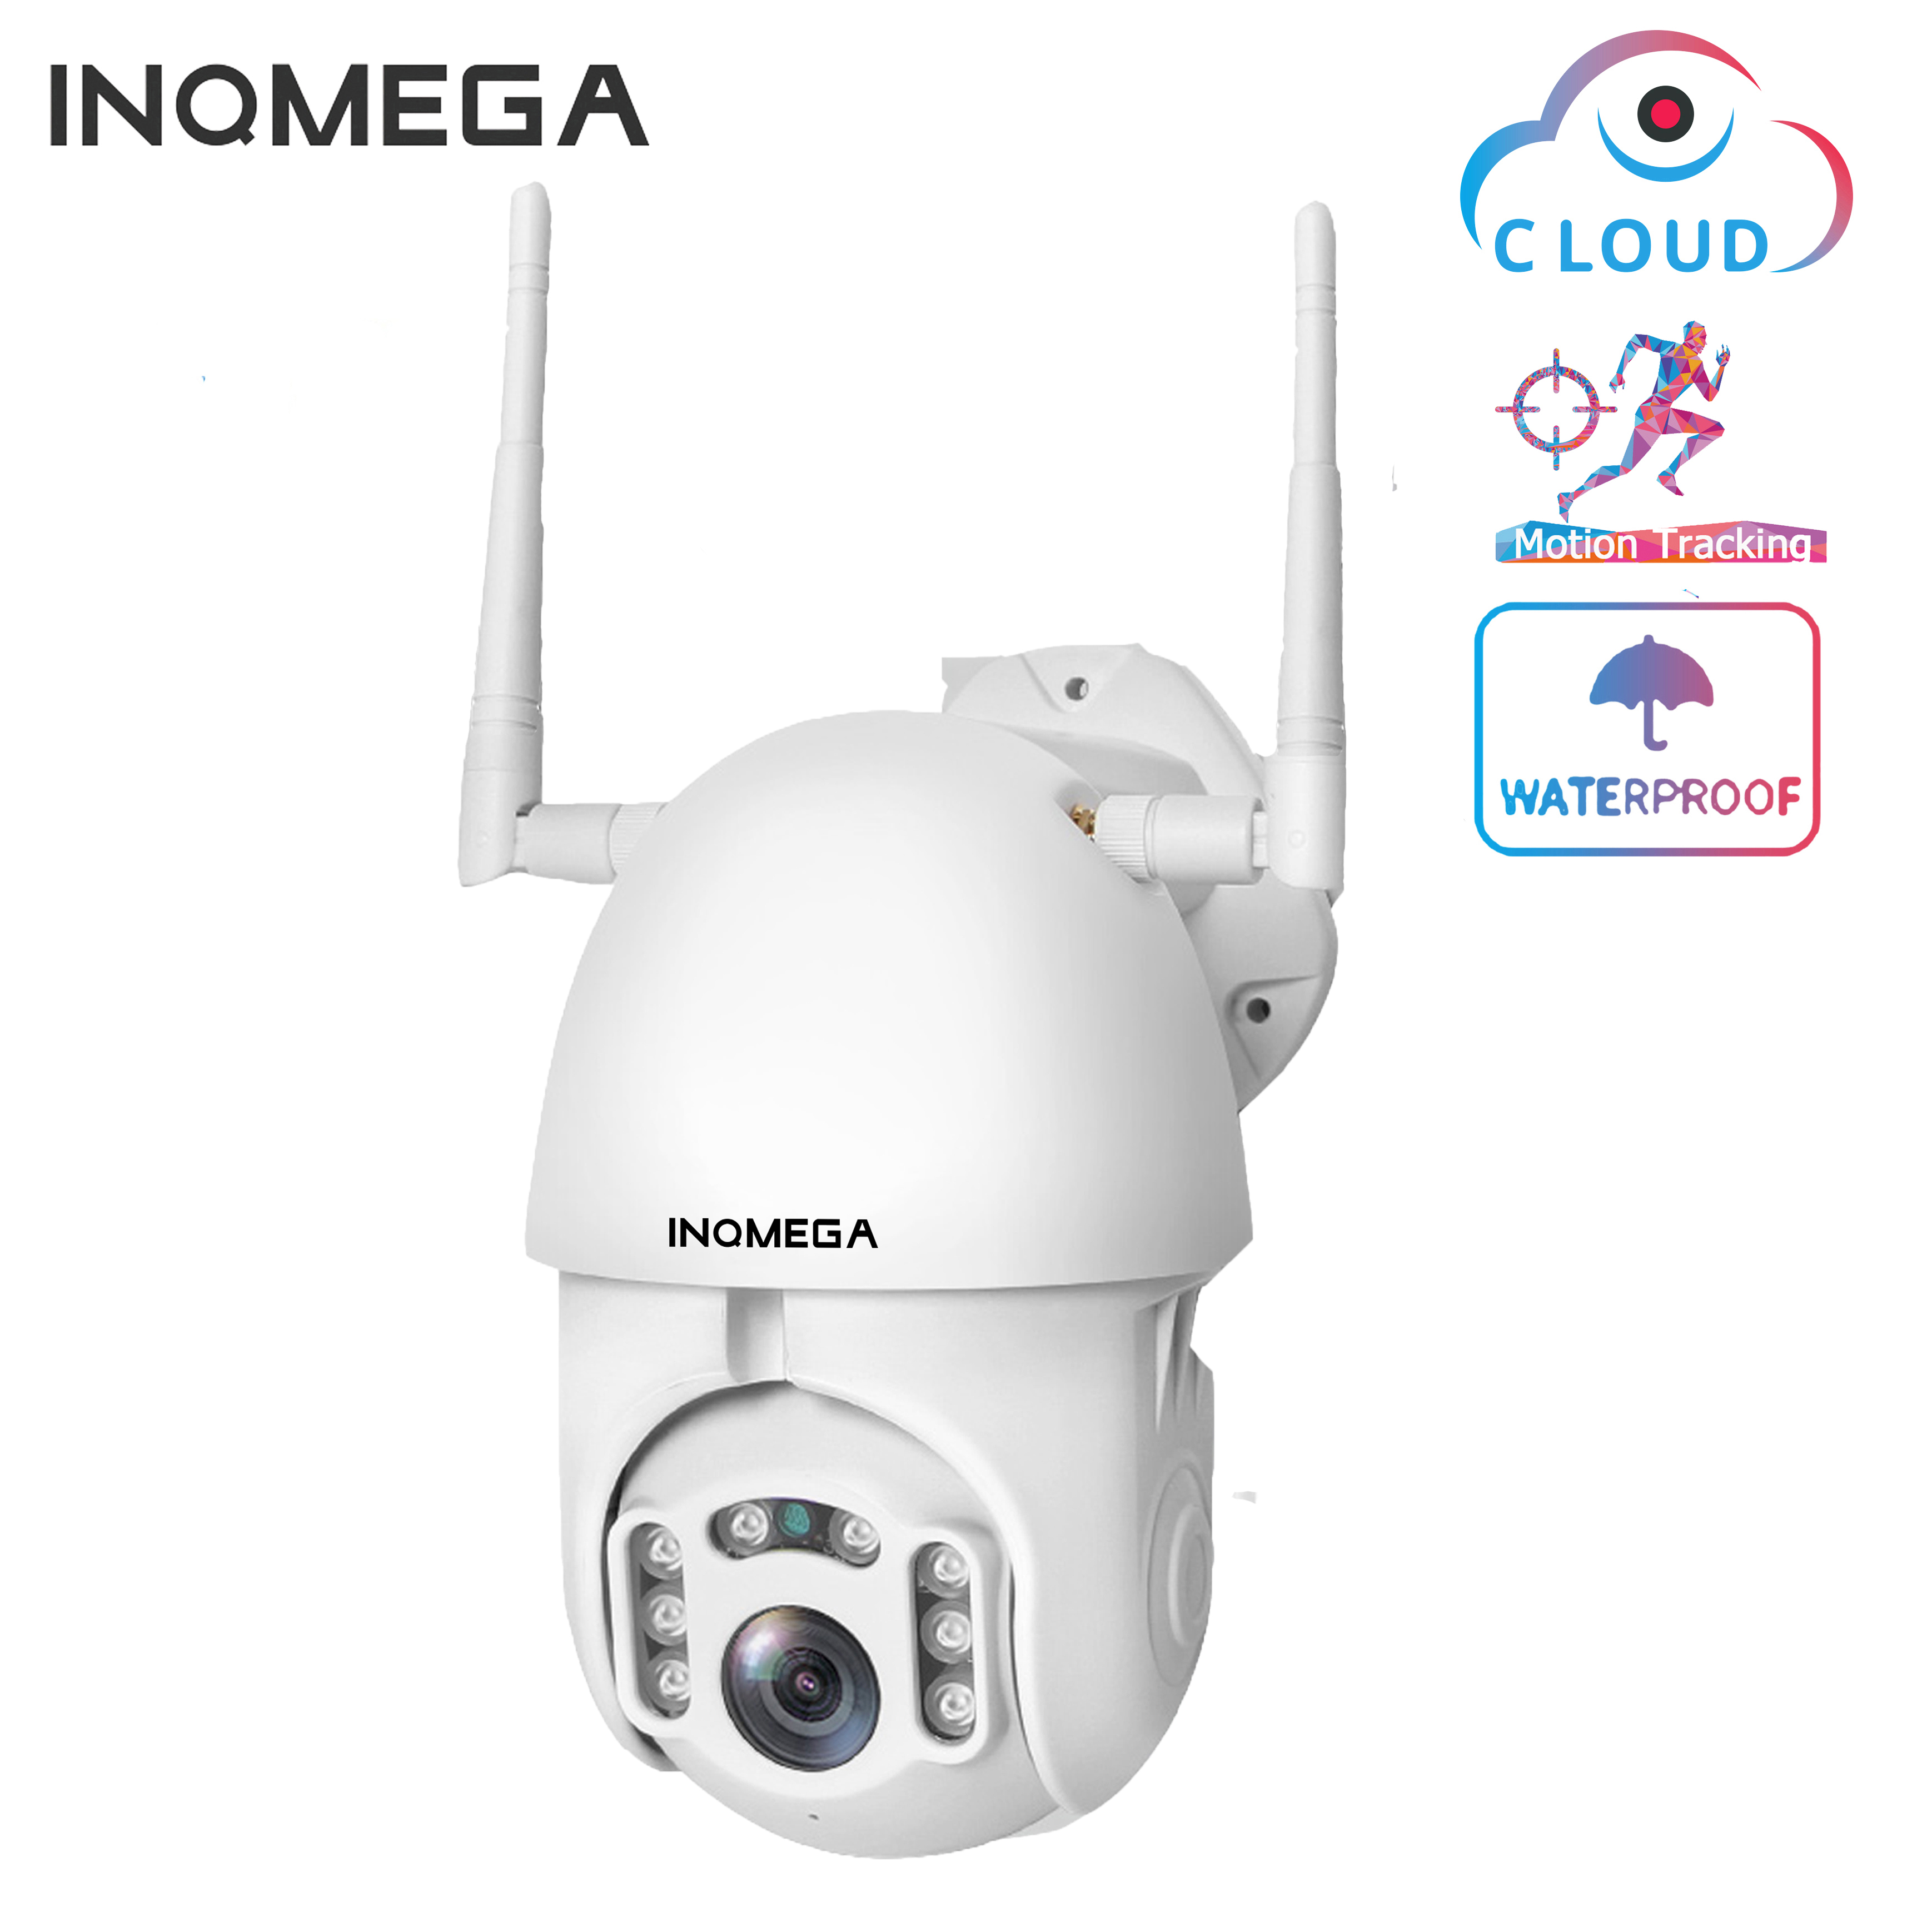 INQMEGA IP Camera WiFi 1080P Wireless Auto Tracking PTZ Speed Dome Camera Outdoor CCTV Security Surveillance Waterproof Camera